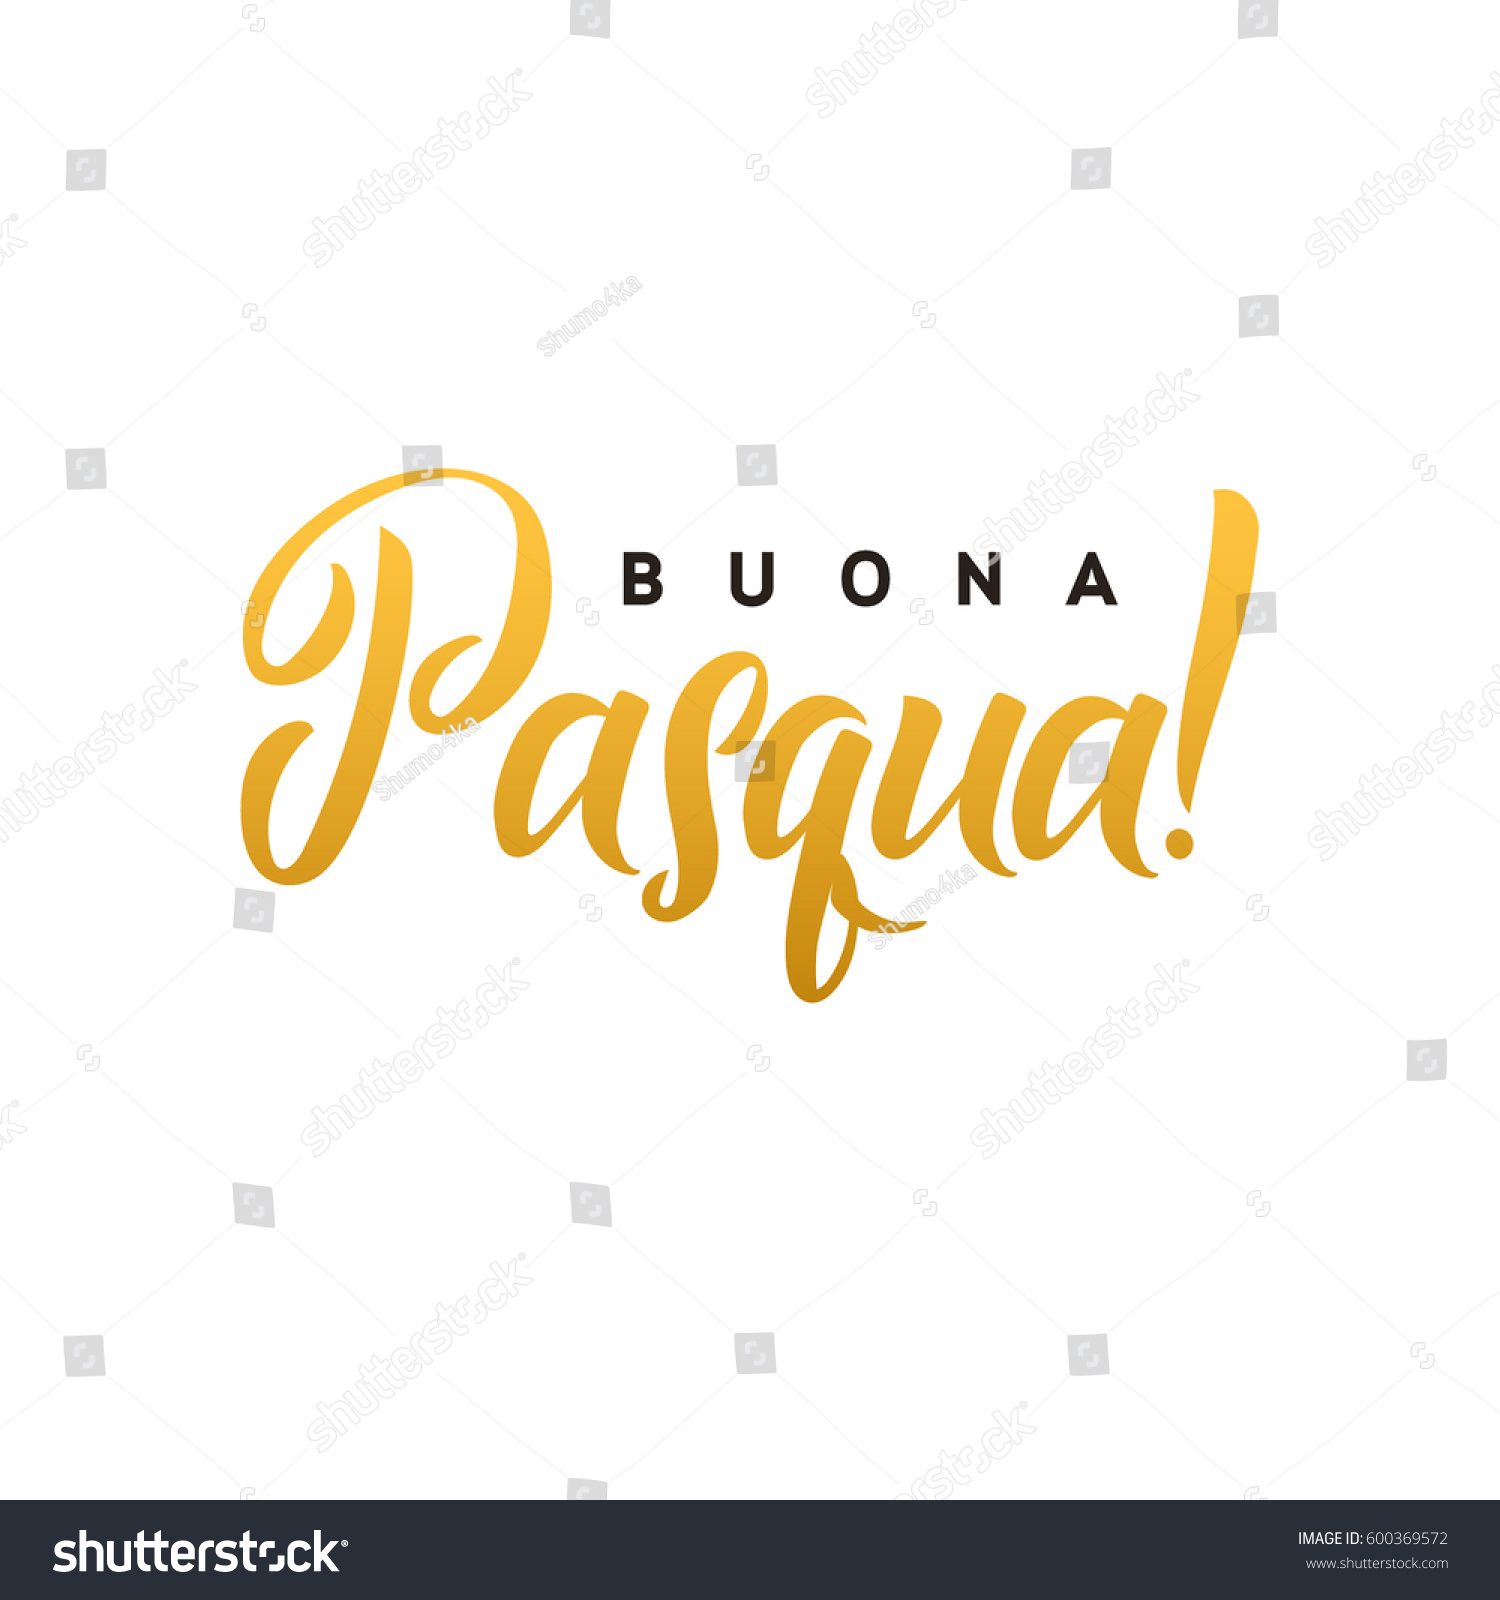 Happy easter hand lettering modern calligraphy stock vector happy easter hand lettering modern calligraphy style vector illustration greeting card italian text template kristyandbryce Gallery